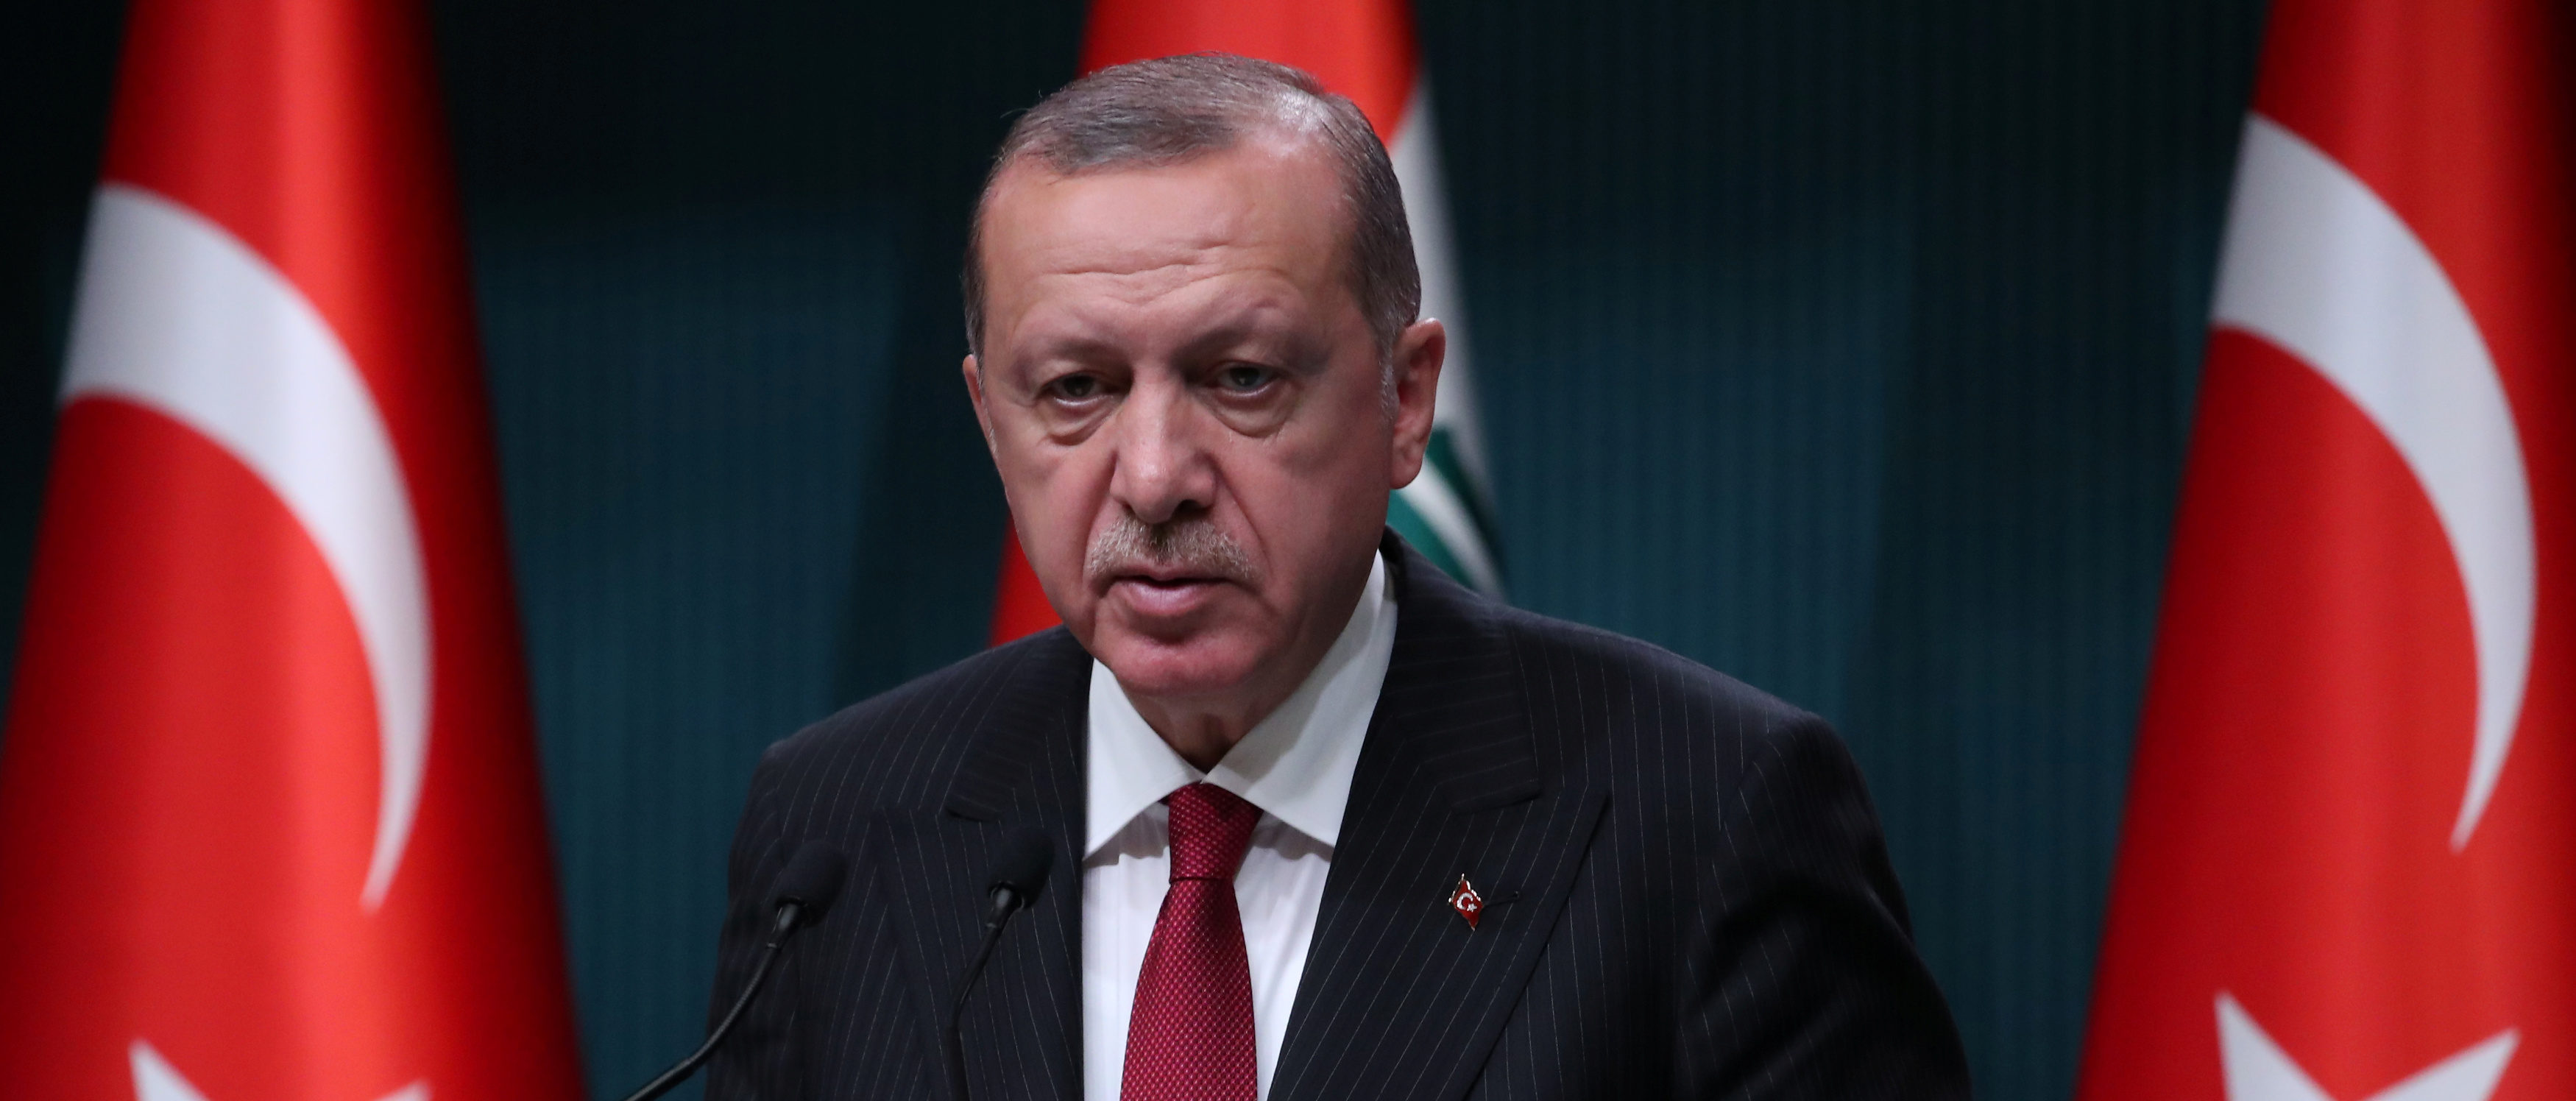 WaPo Runs Full-Page Ad Calling For Extradition Of Erdogan's Political Foe